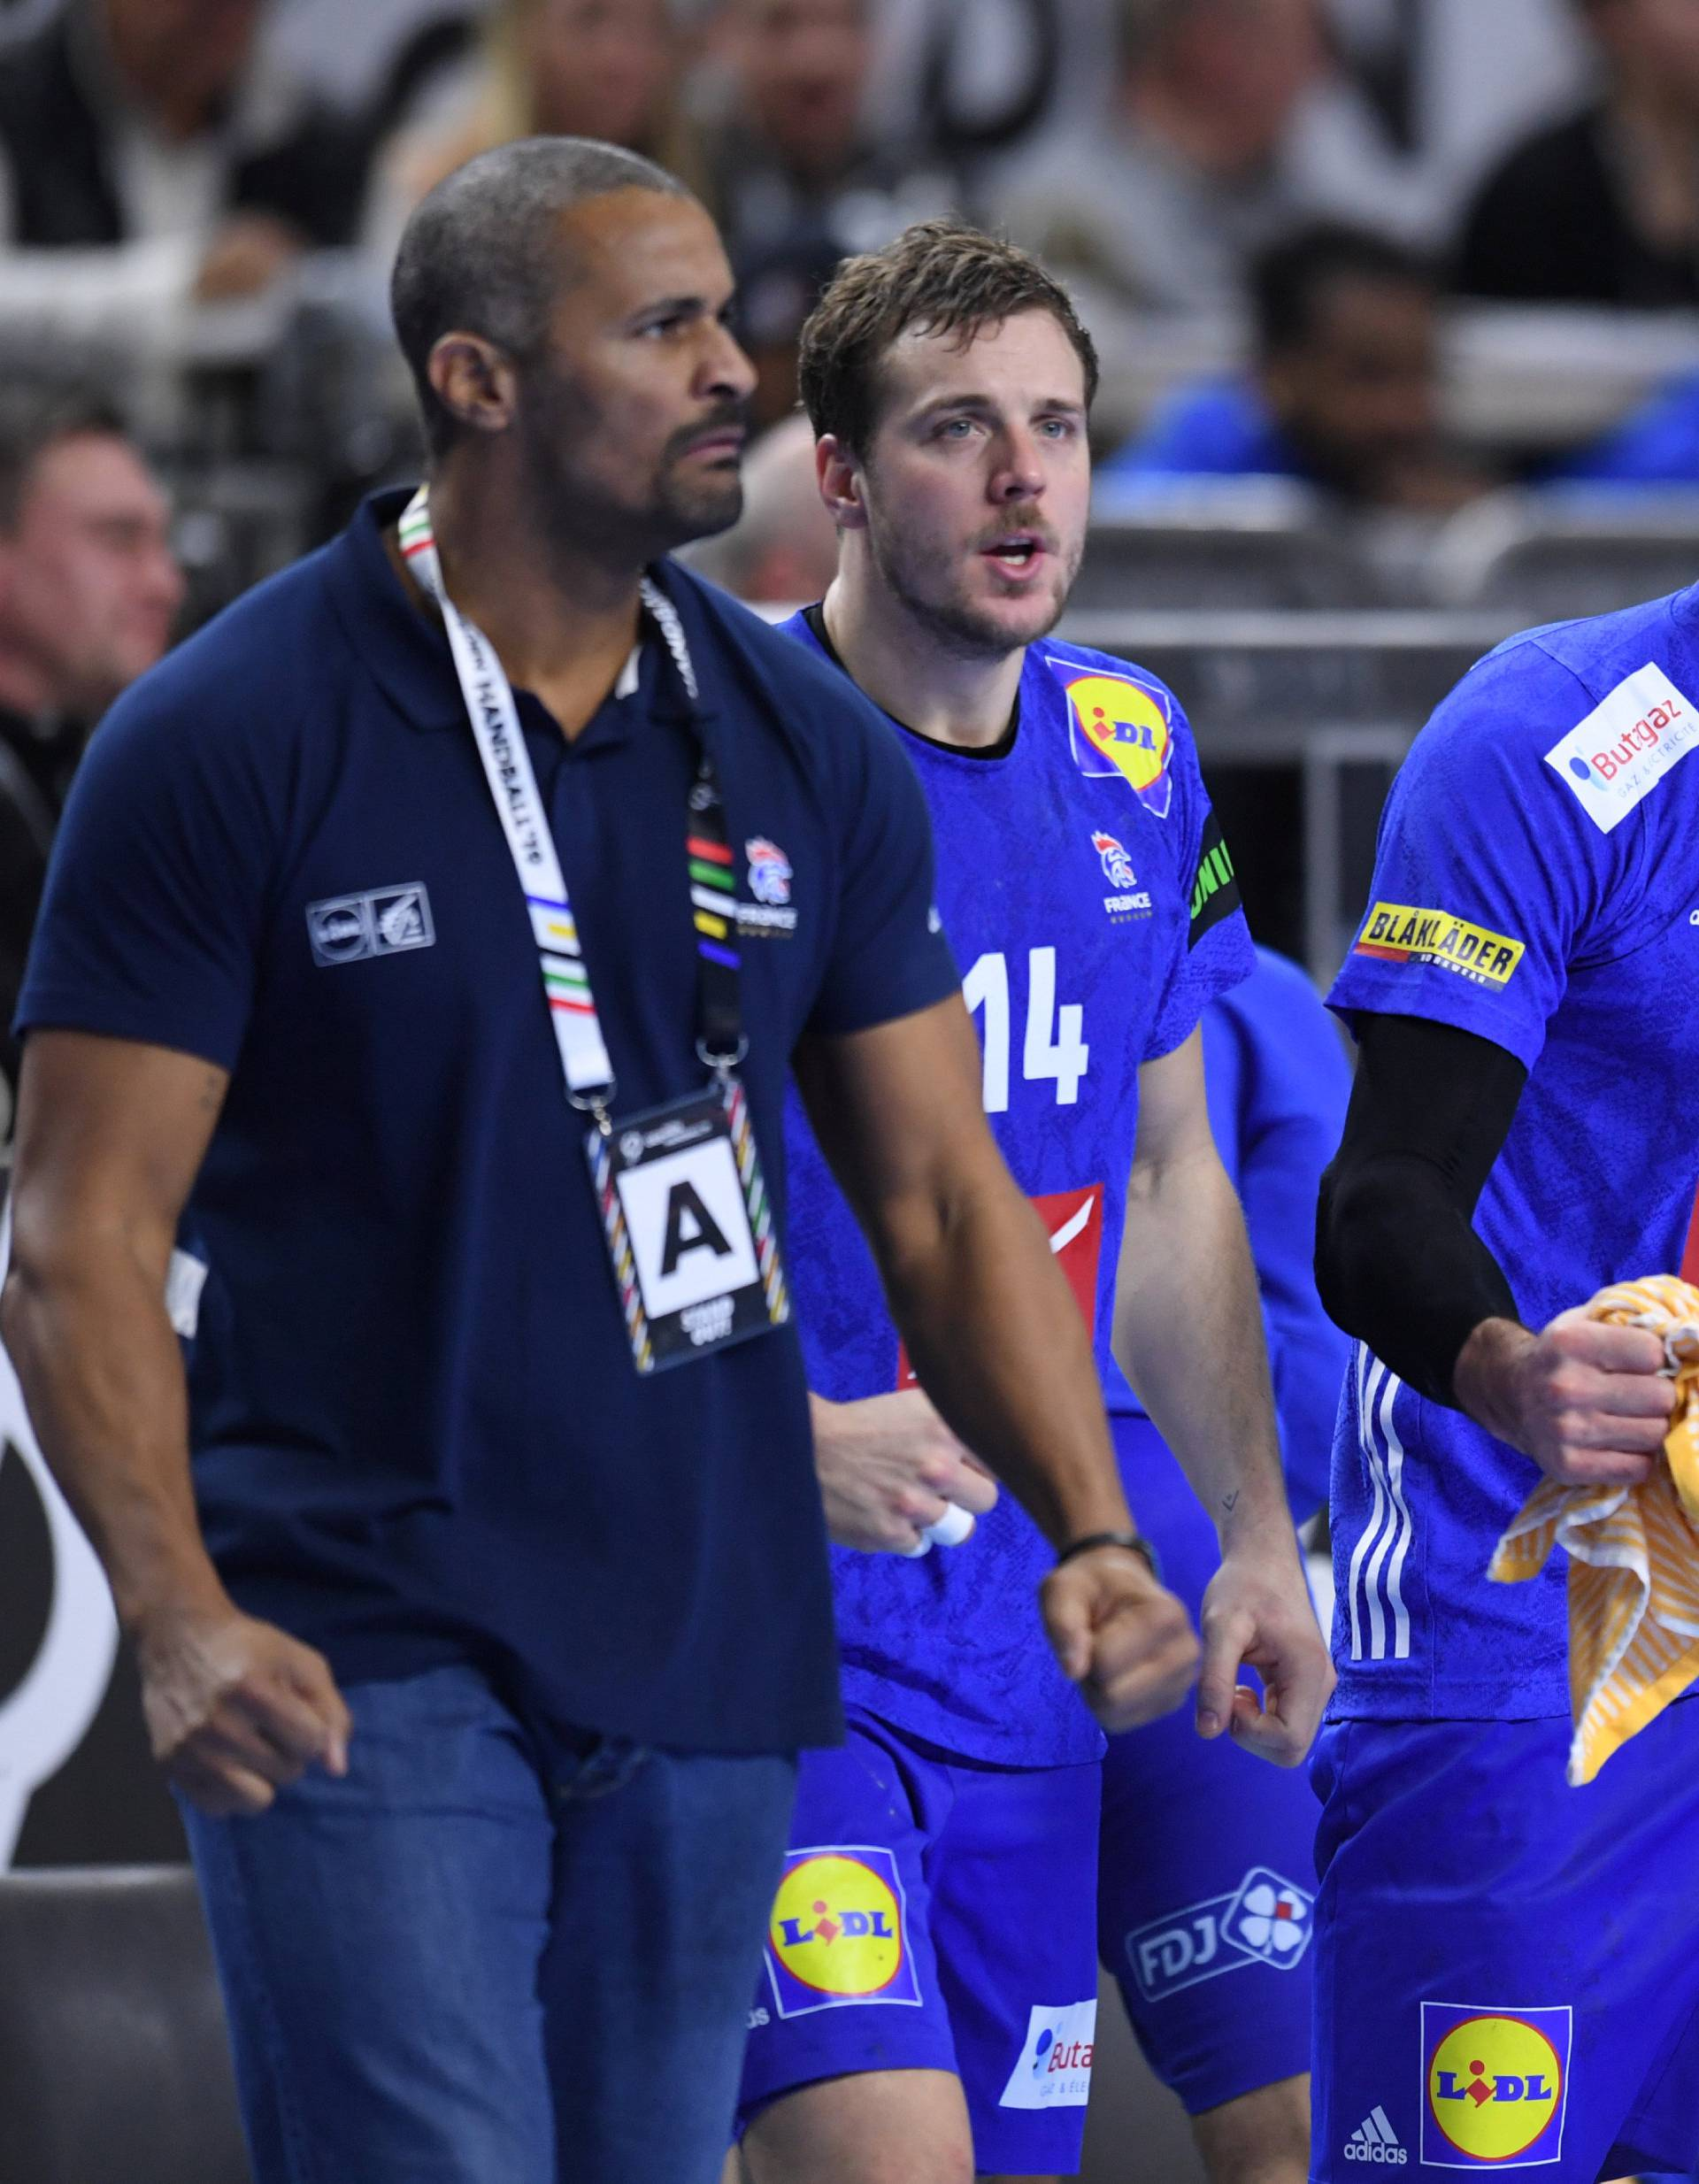 IHF Handball World Championship - Germany & Denmark 2019 - Main Round Group 1 -  France v Spain